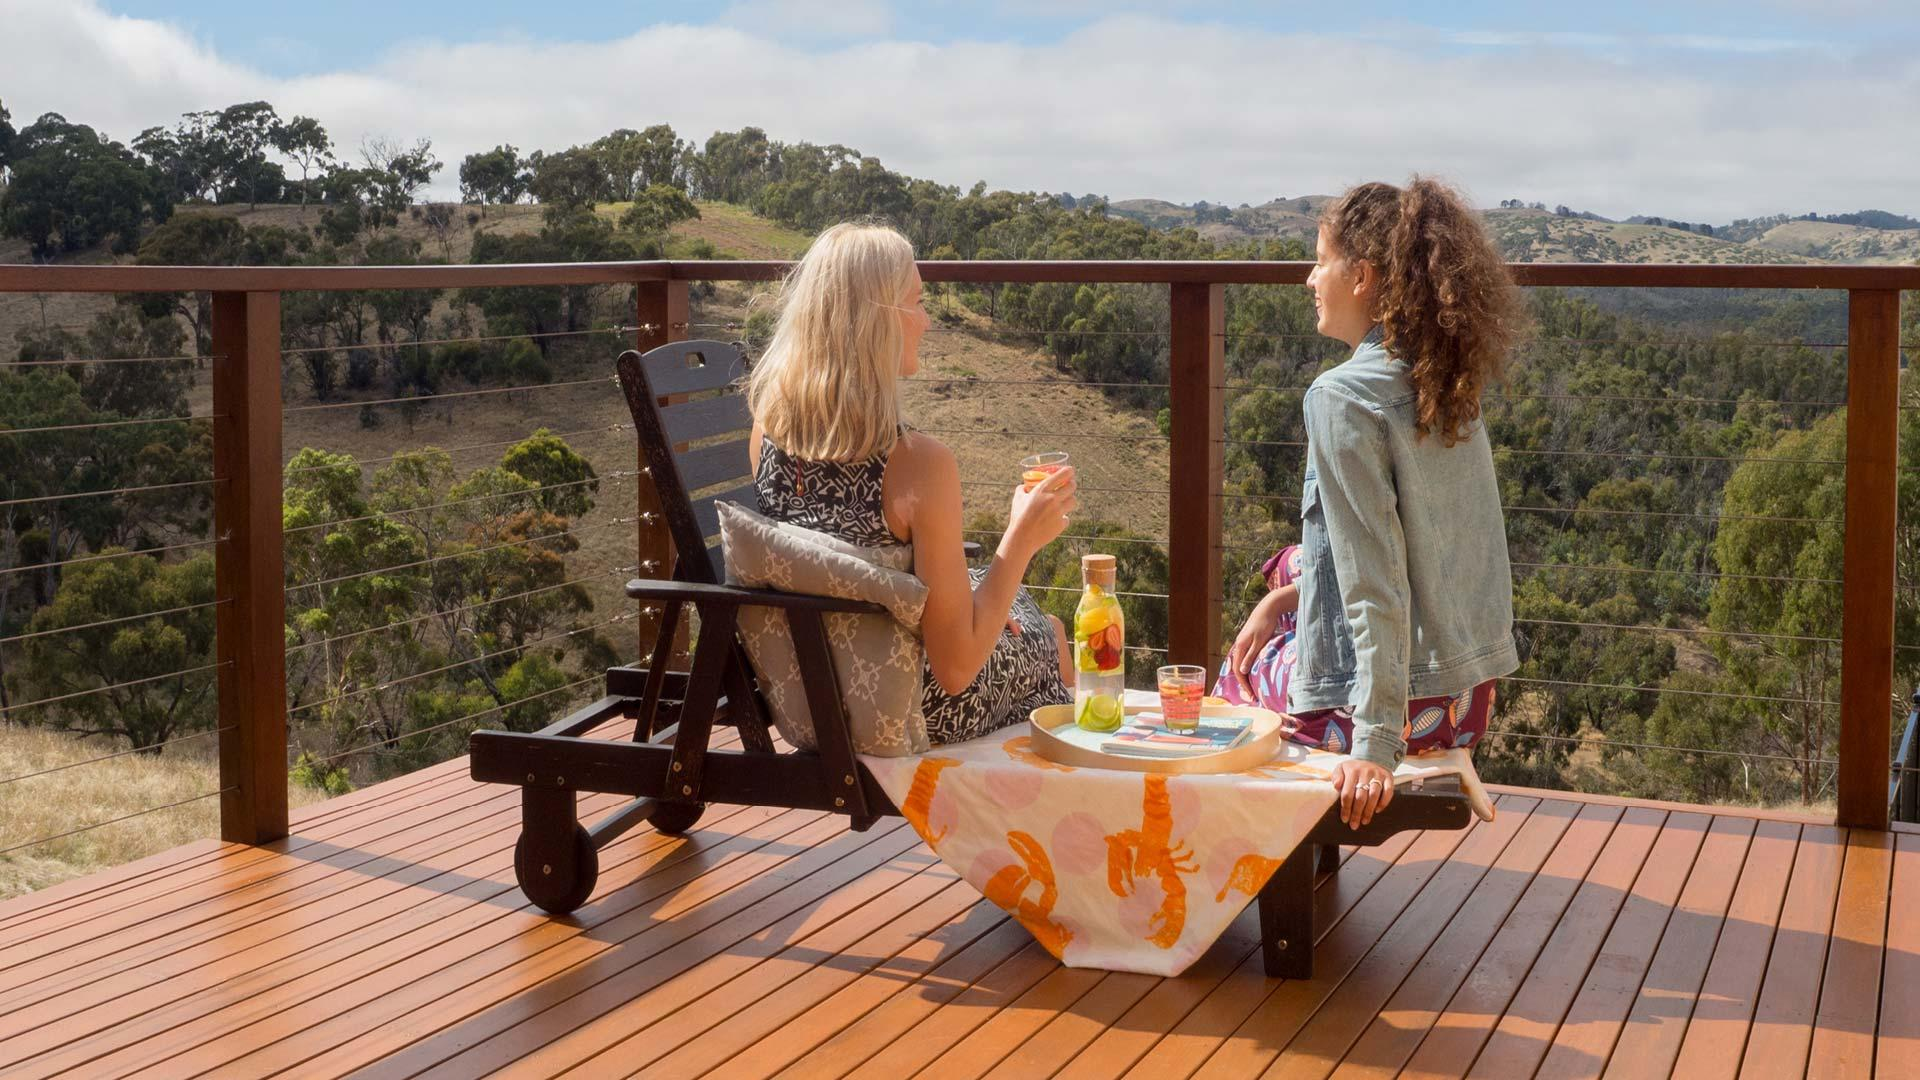 Timber decking: a great solution for a sloping backyard - Make the most of your view with a timber deck, Australian Outdoor Living.